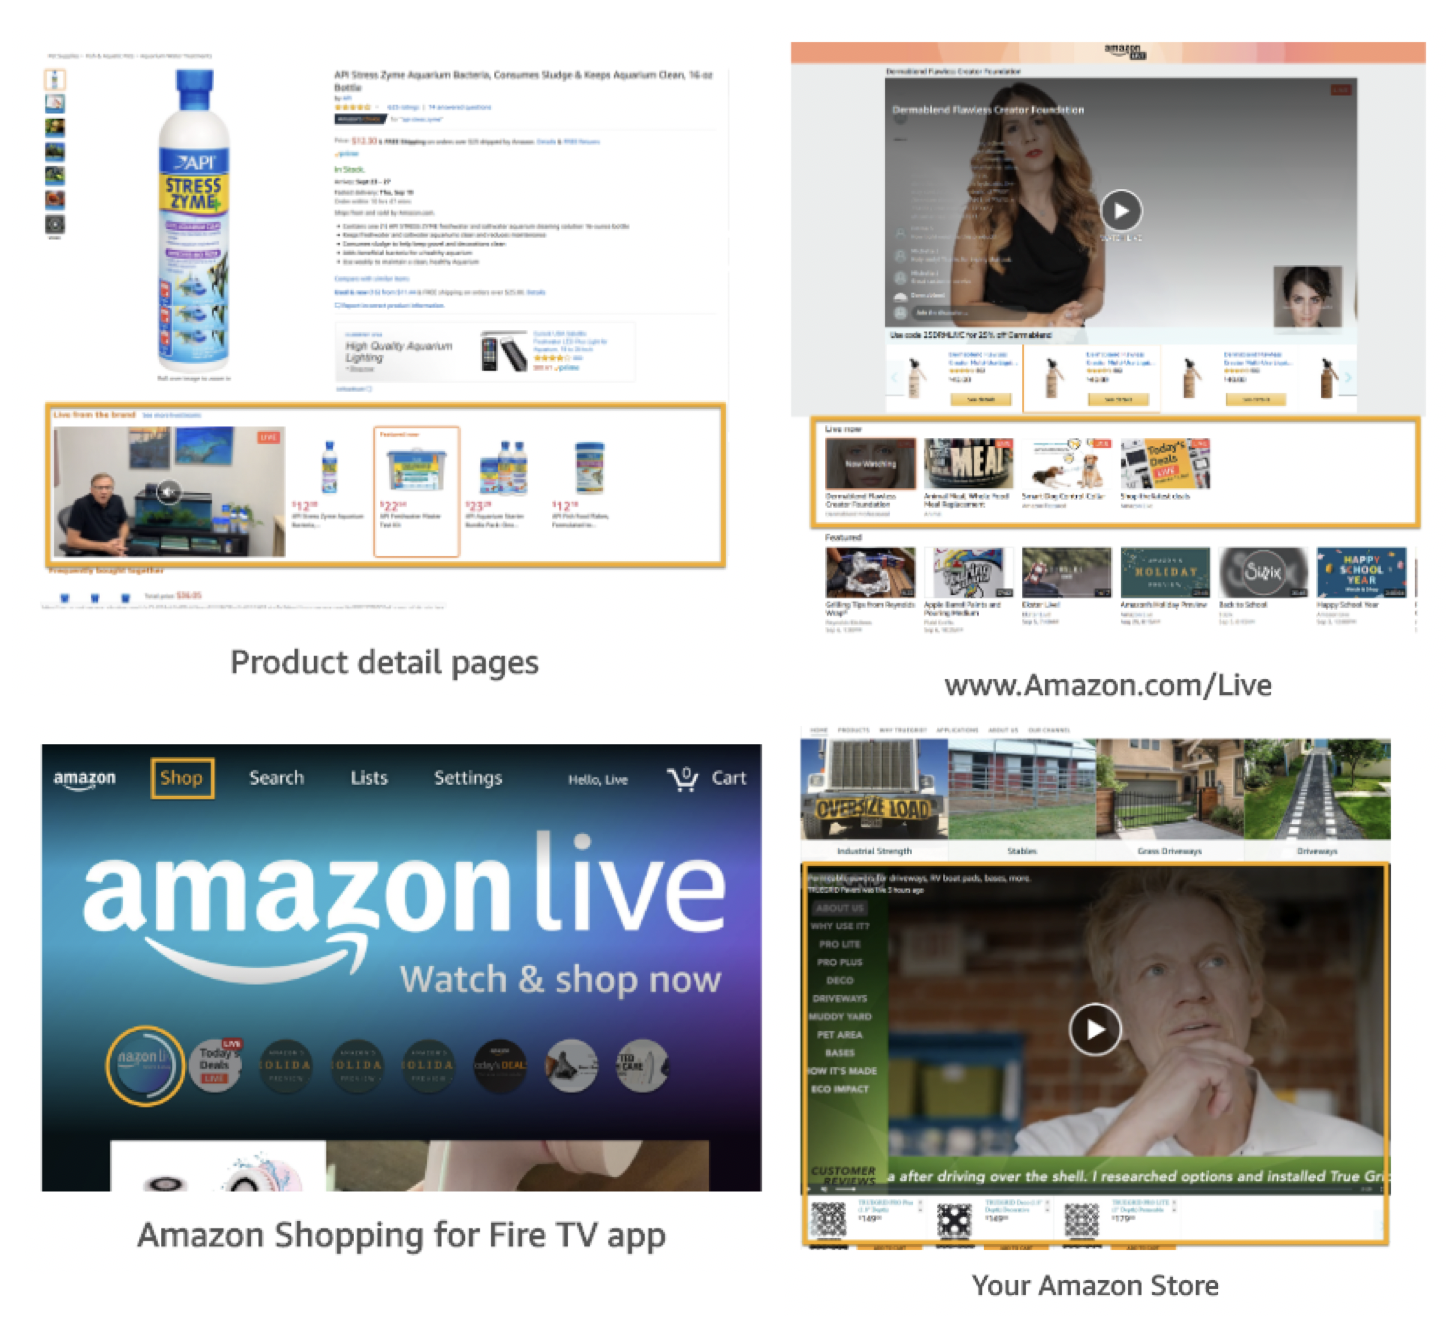 Amazon Livestreams can be found on product detail pages, the Amazon Live URL, Amazon Shopping for Fire TV app, and your Amazon Store.